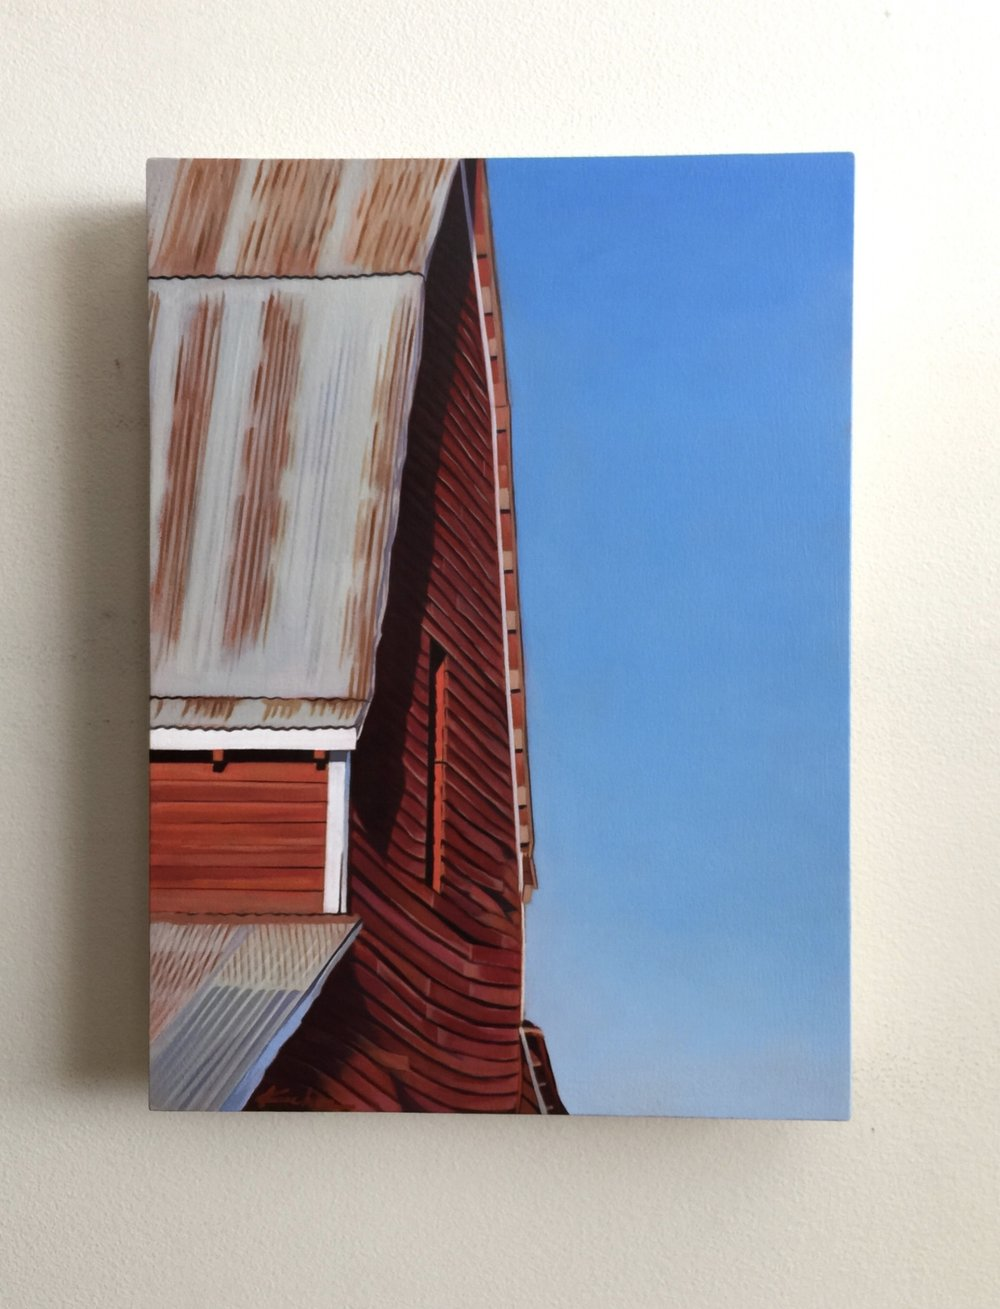 AVAILABLE Title: SOPHIE'S BARN 10.5 x 14.5, Oil on Board